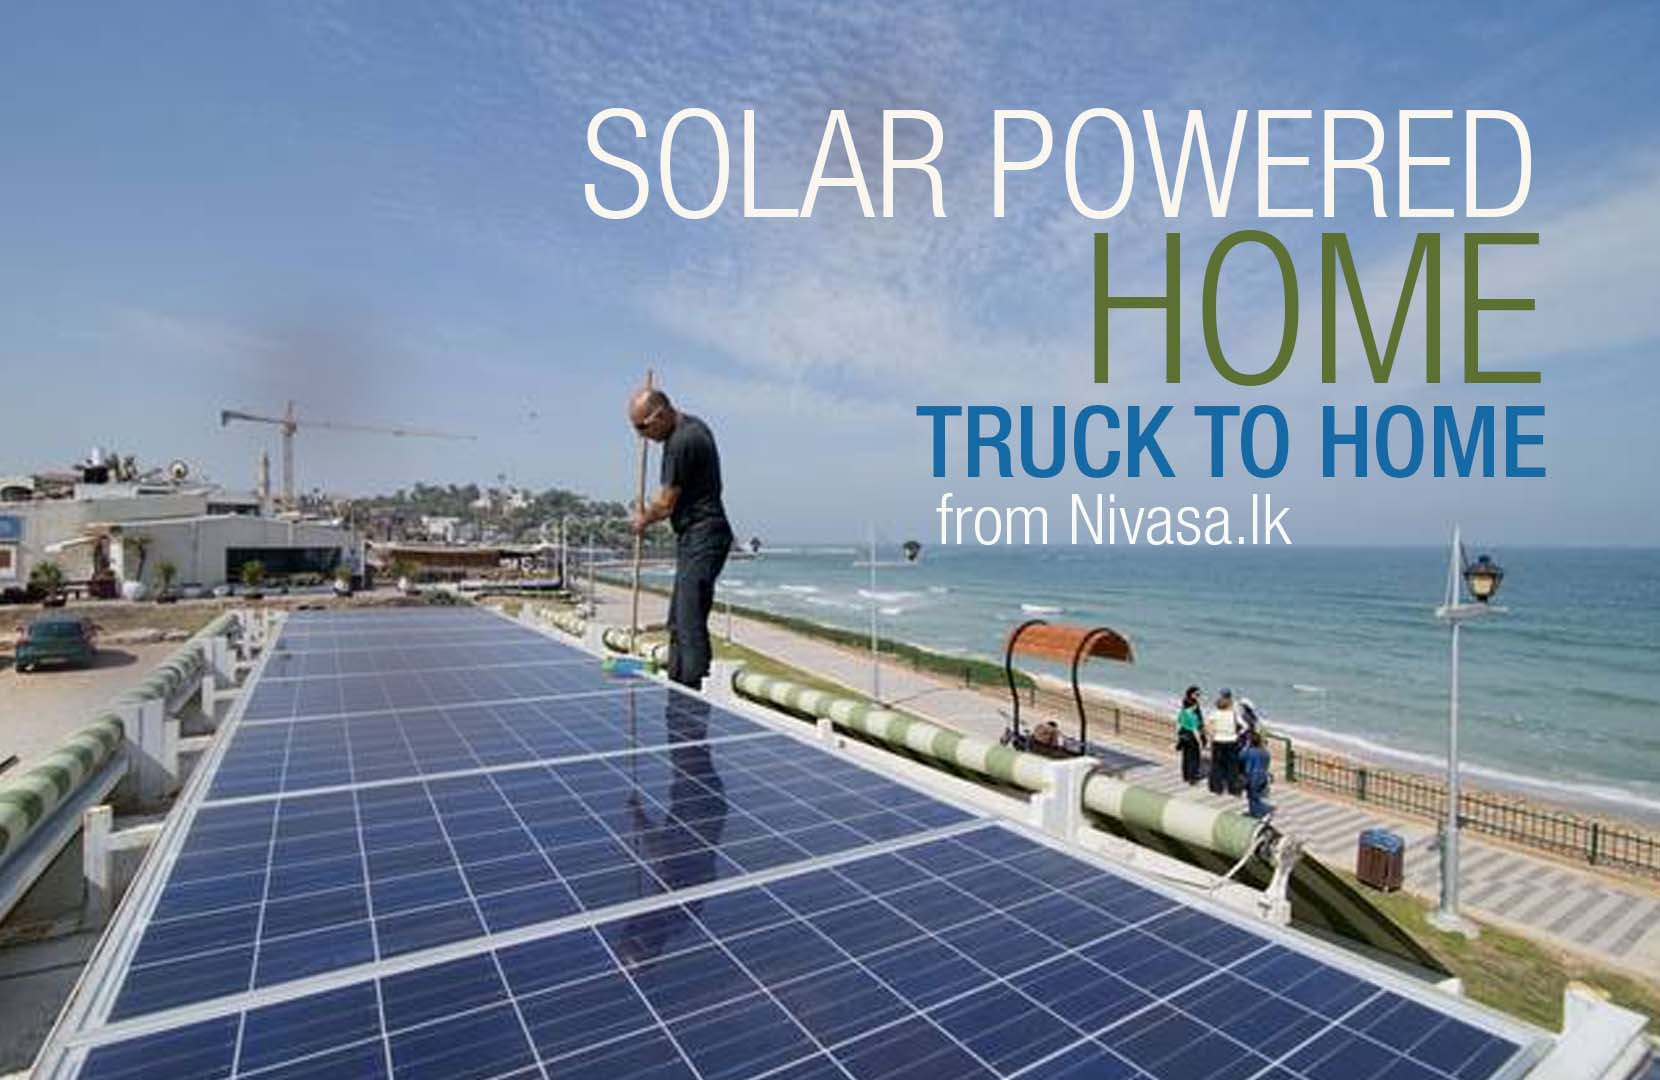 Man converts truck into solar-powered home